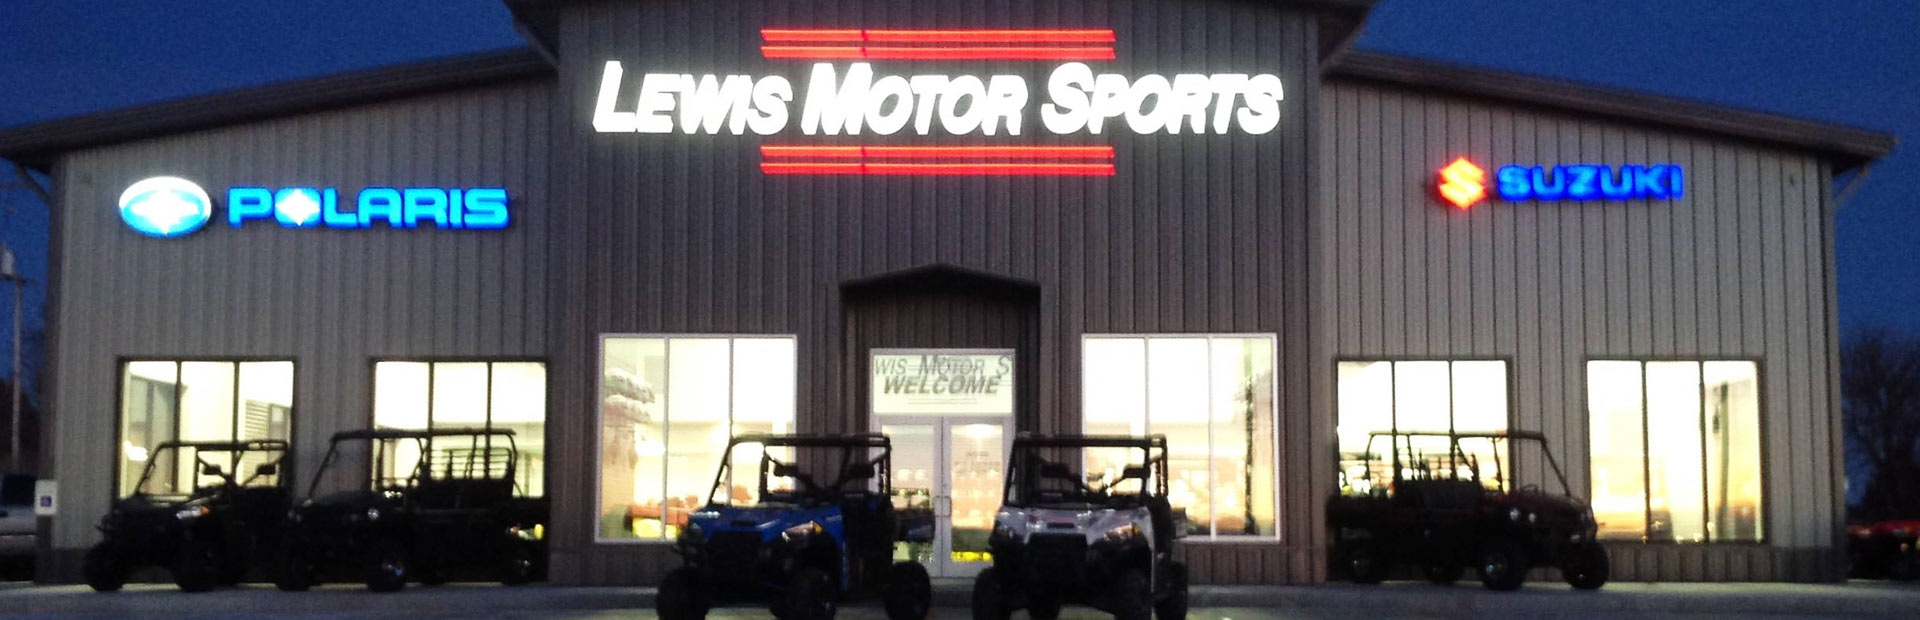 Lewis Motor Sports: Click here to contact us.